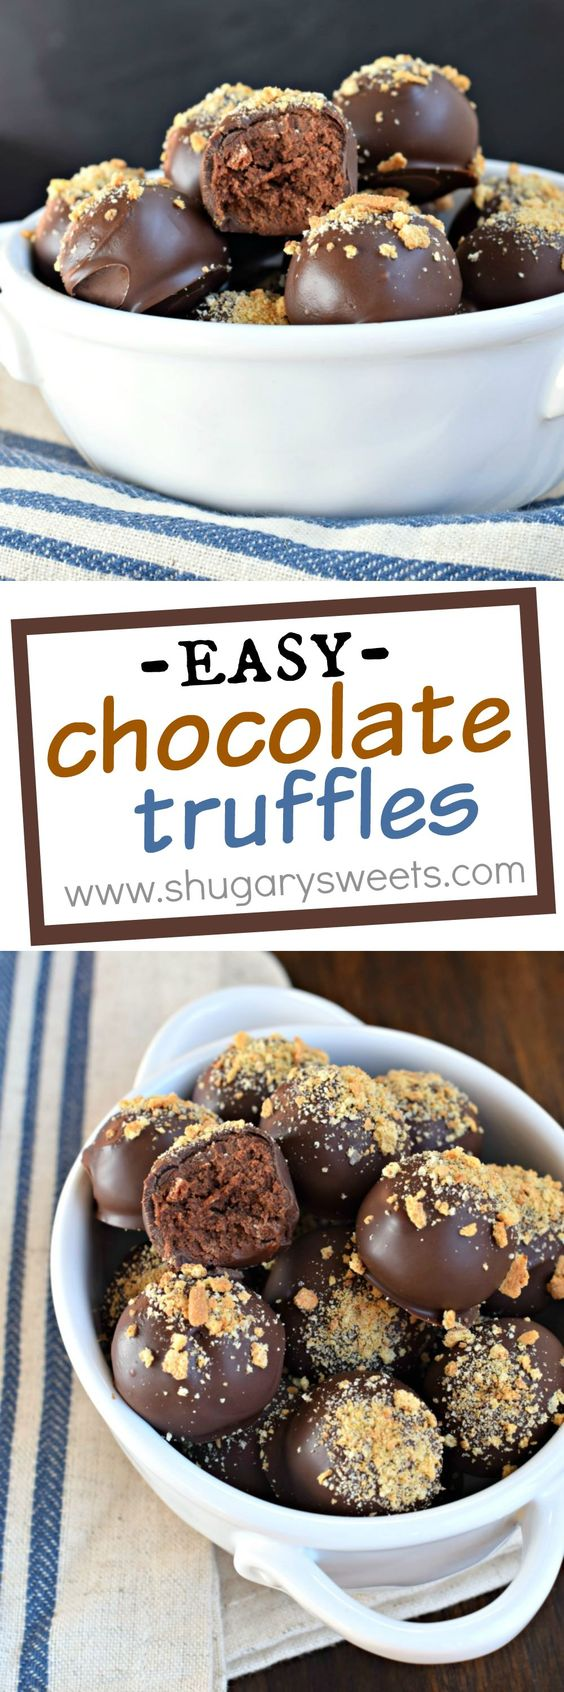 Rich and decadent, these truly are EASY Chocolate Truffles! Perfect for a delicious treat, or give as a gift.